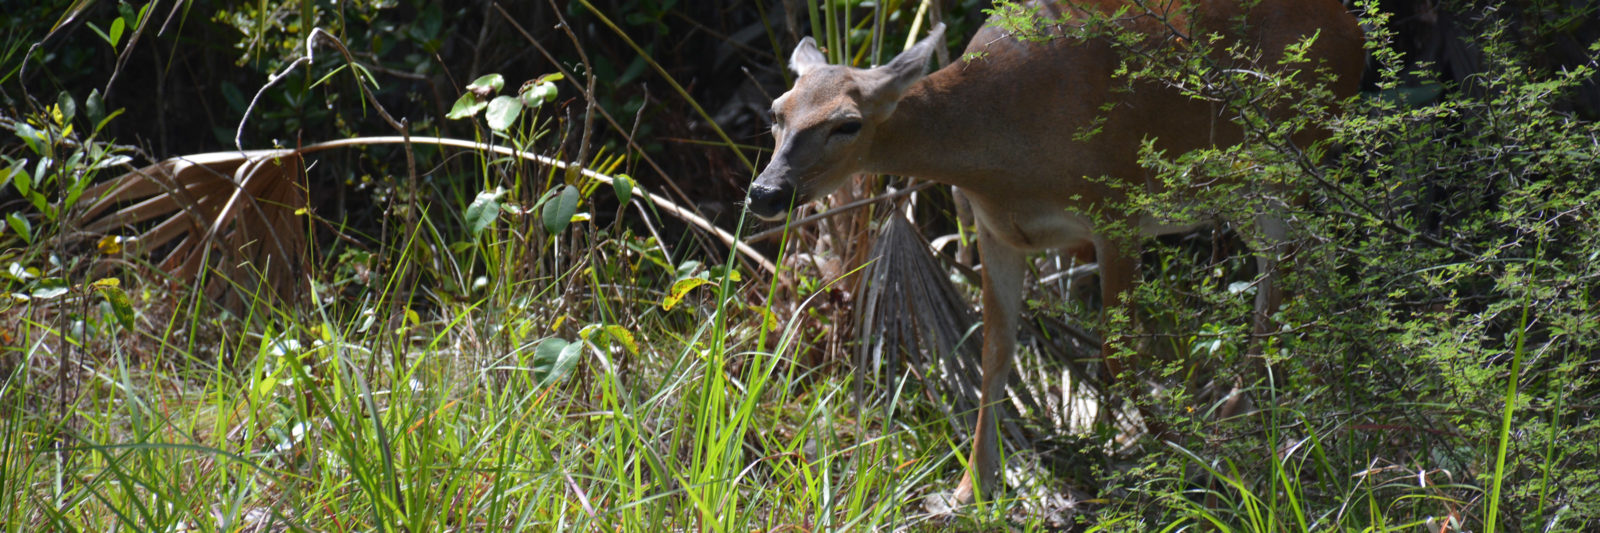 Key Deer on Big Pine Key